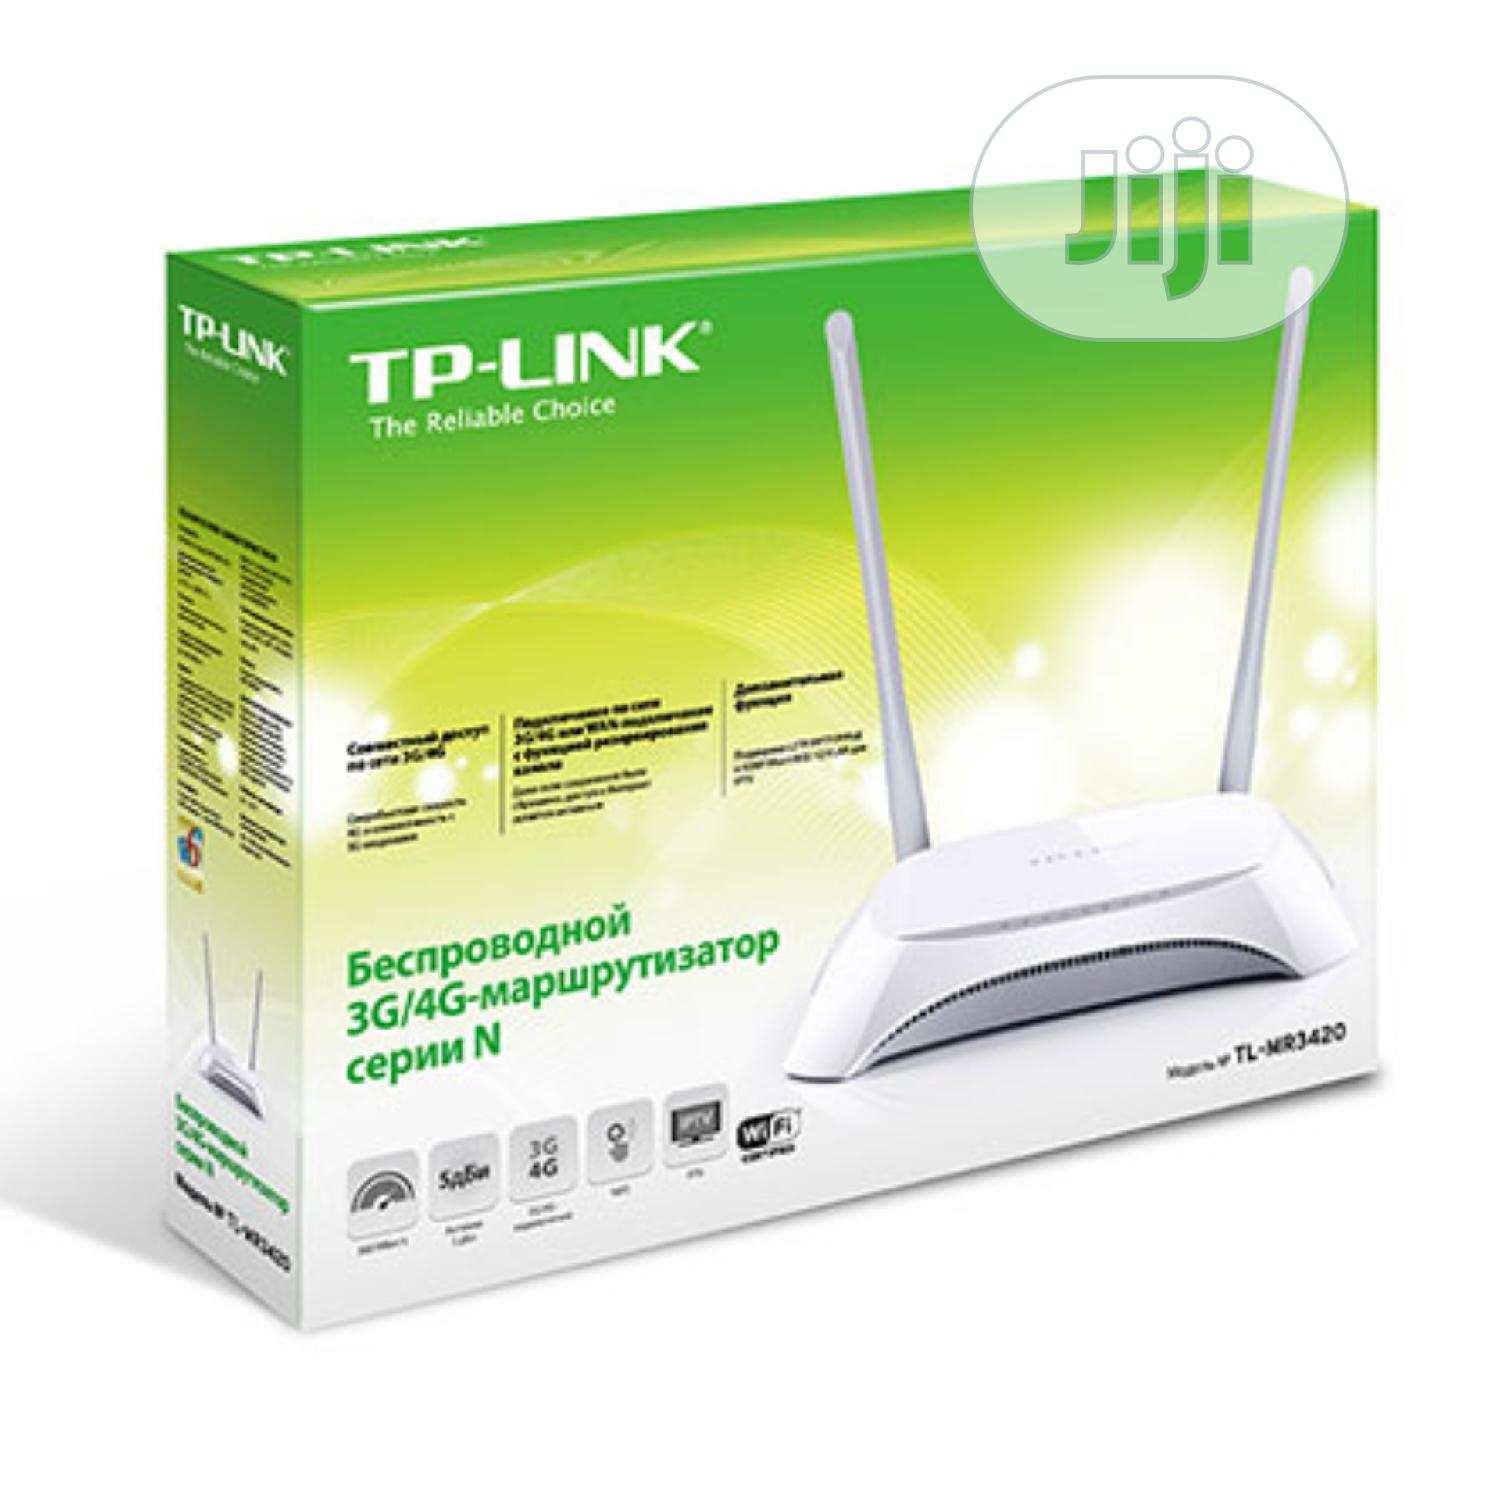 TP Links 3G/4G Router